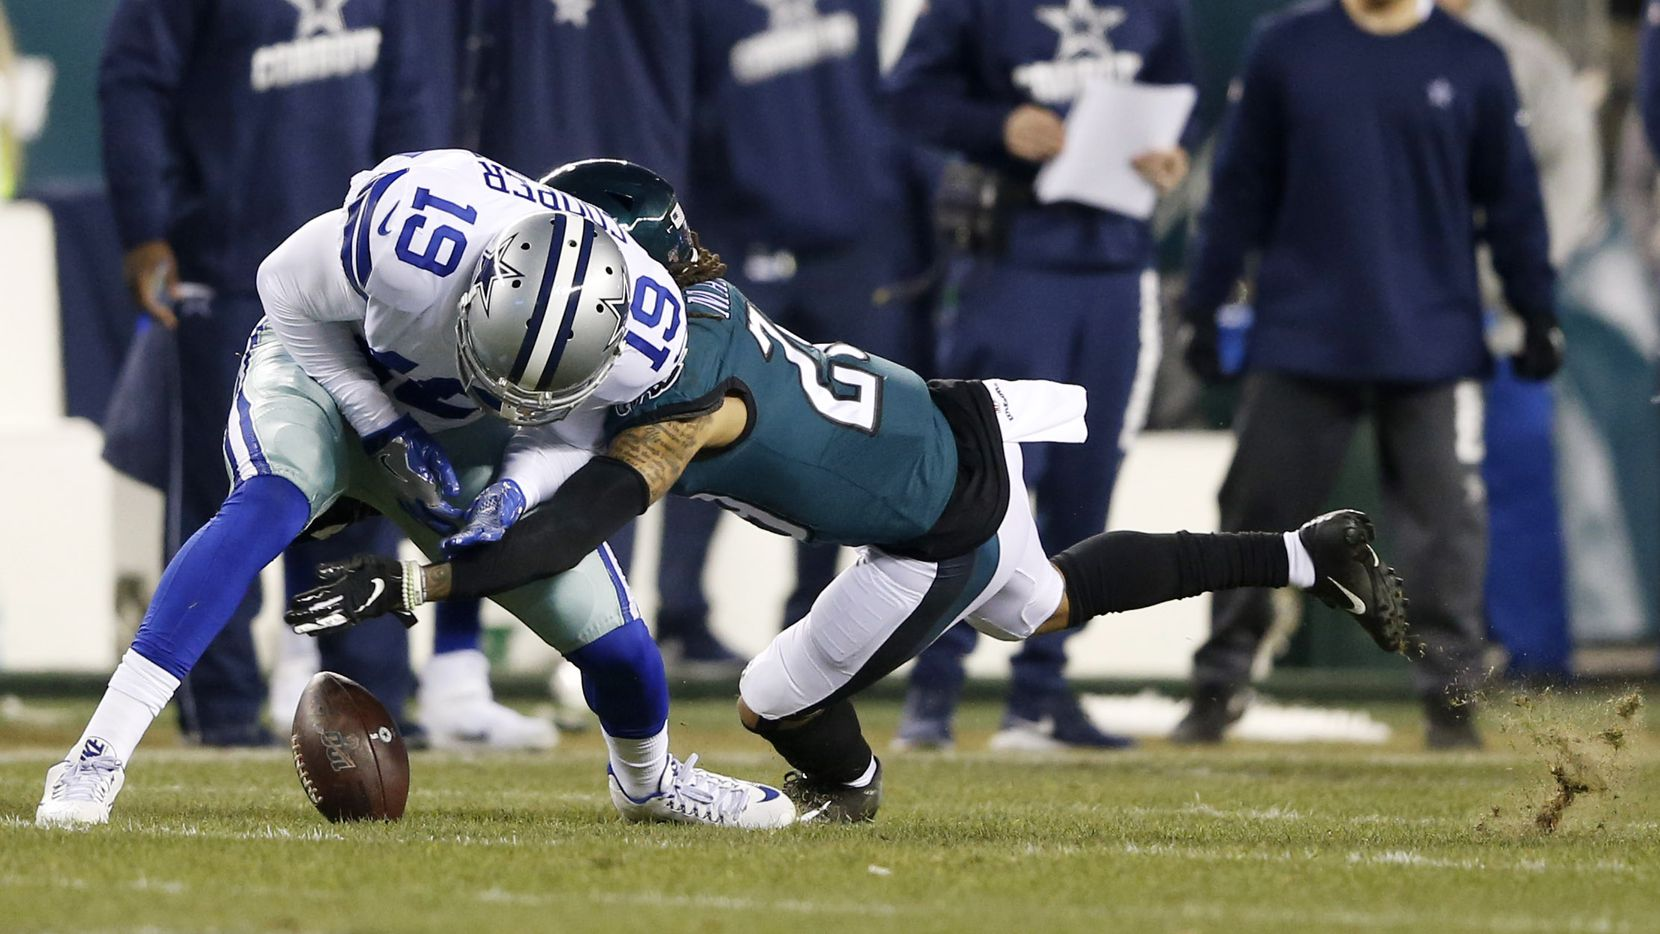 Cowboys receiver Amari Cooper (19) drops a pass on third down as Eagles cornerback Avonte Maddox (29) defends during the first half of play at Lincoln Financial Field in Philadelphia on Sunday, Dec. 22, 2019. (Vernon Bryant/The Dallas Morning News)